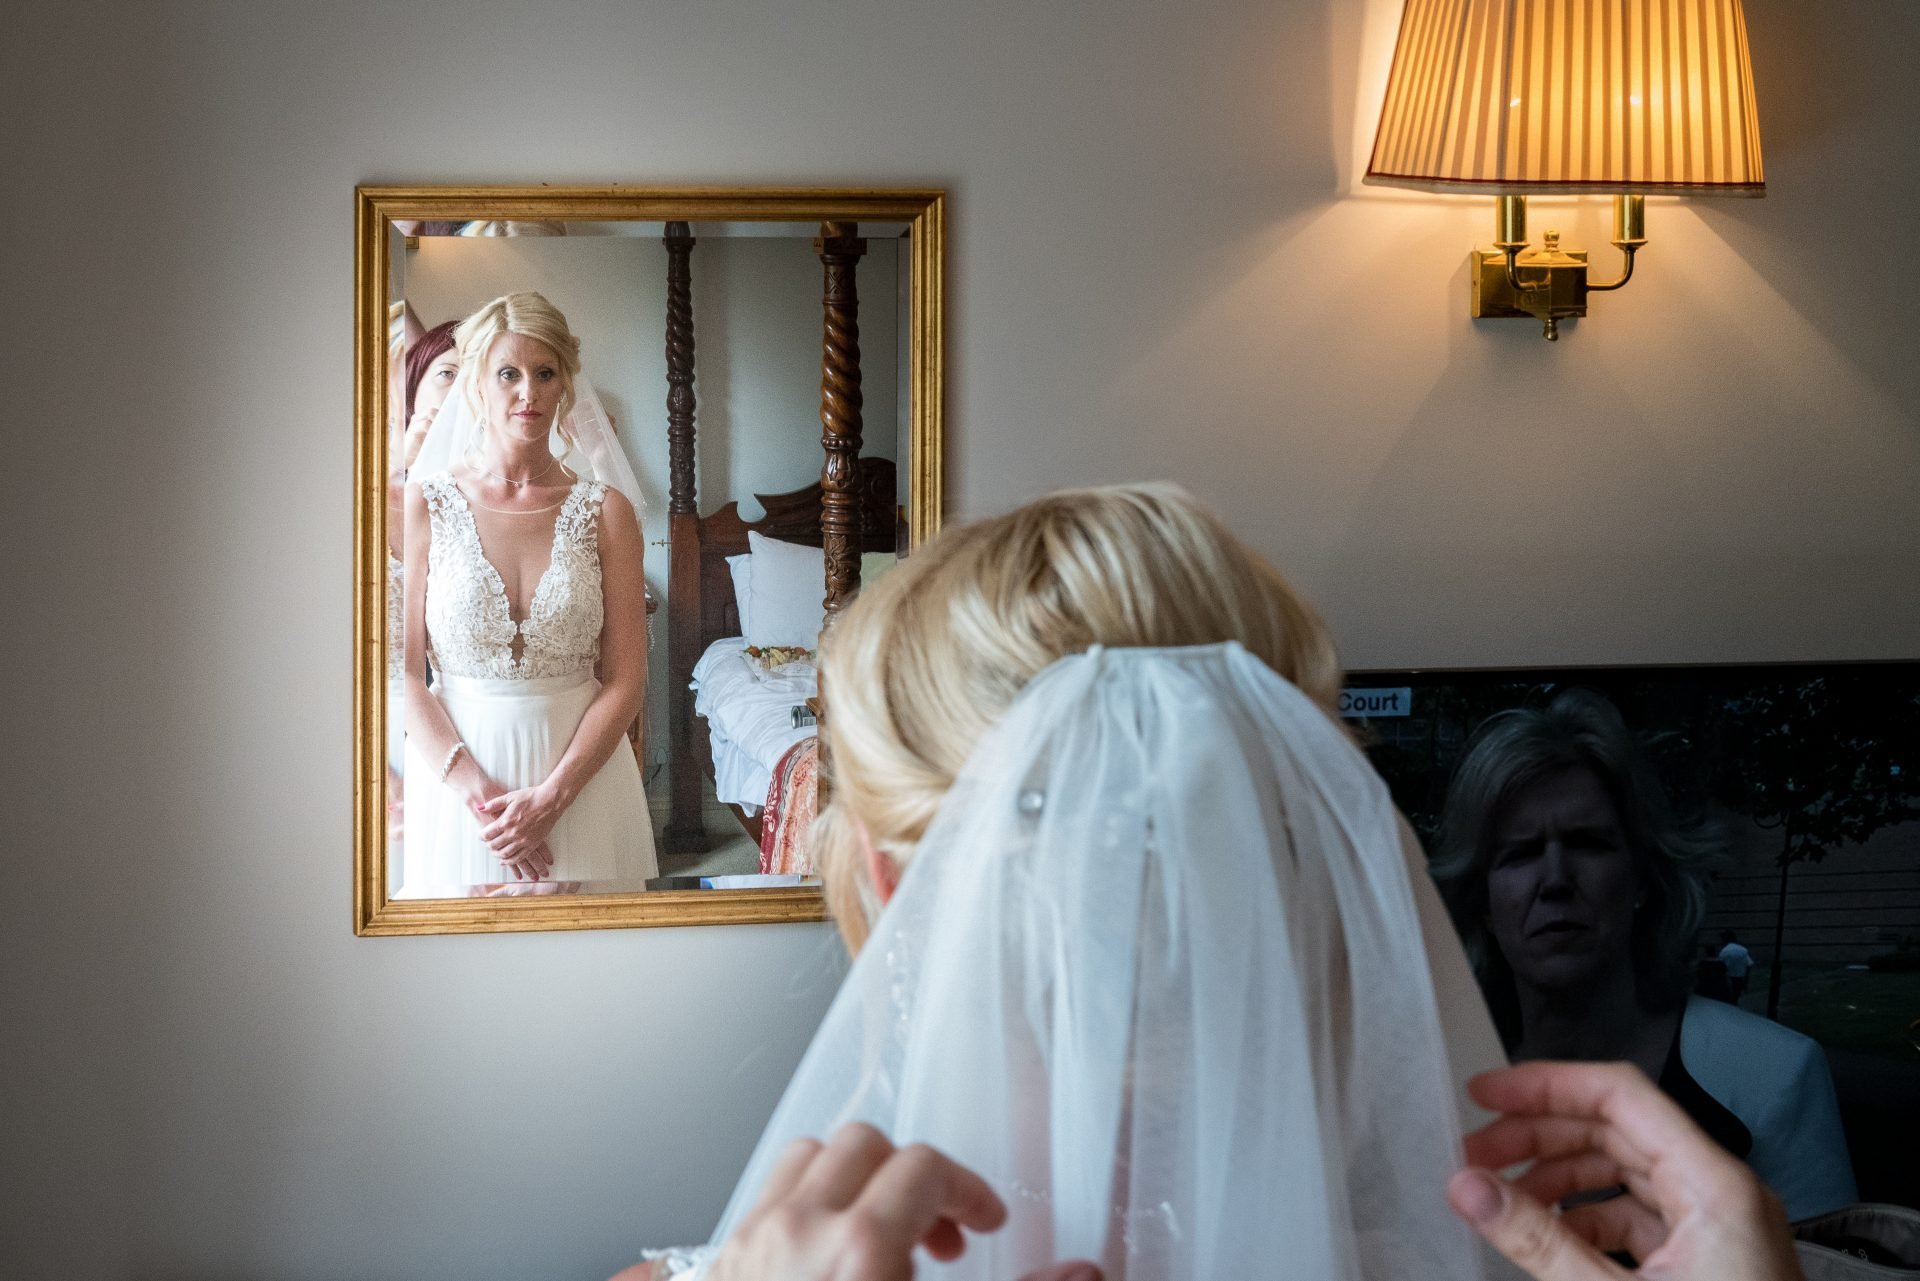 YFFUK Phil Endicott Murray Best Western Moore Place Hotel Aspley Guise bride having her veil fitted reflected in the mirror